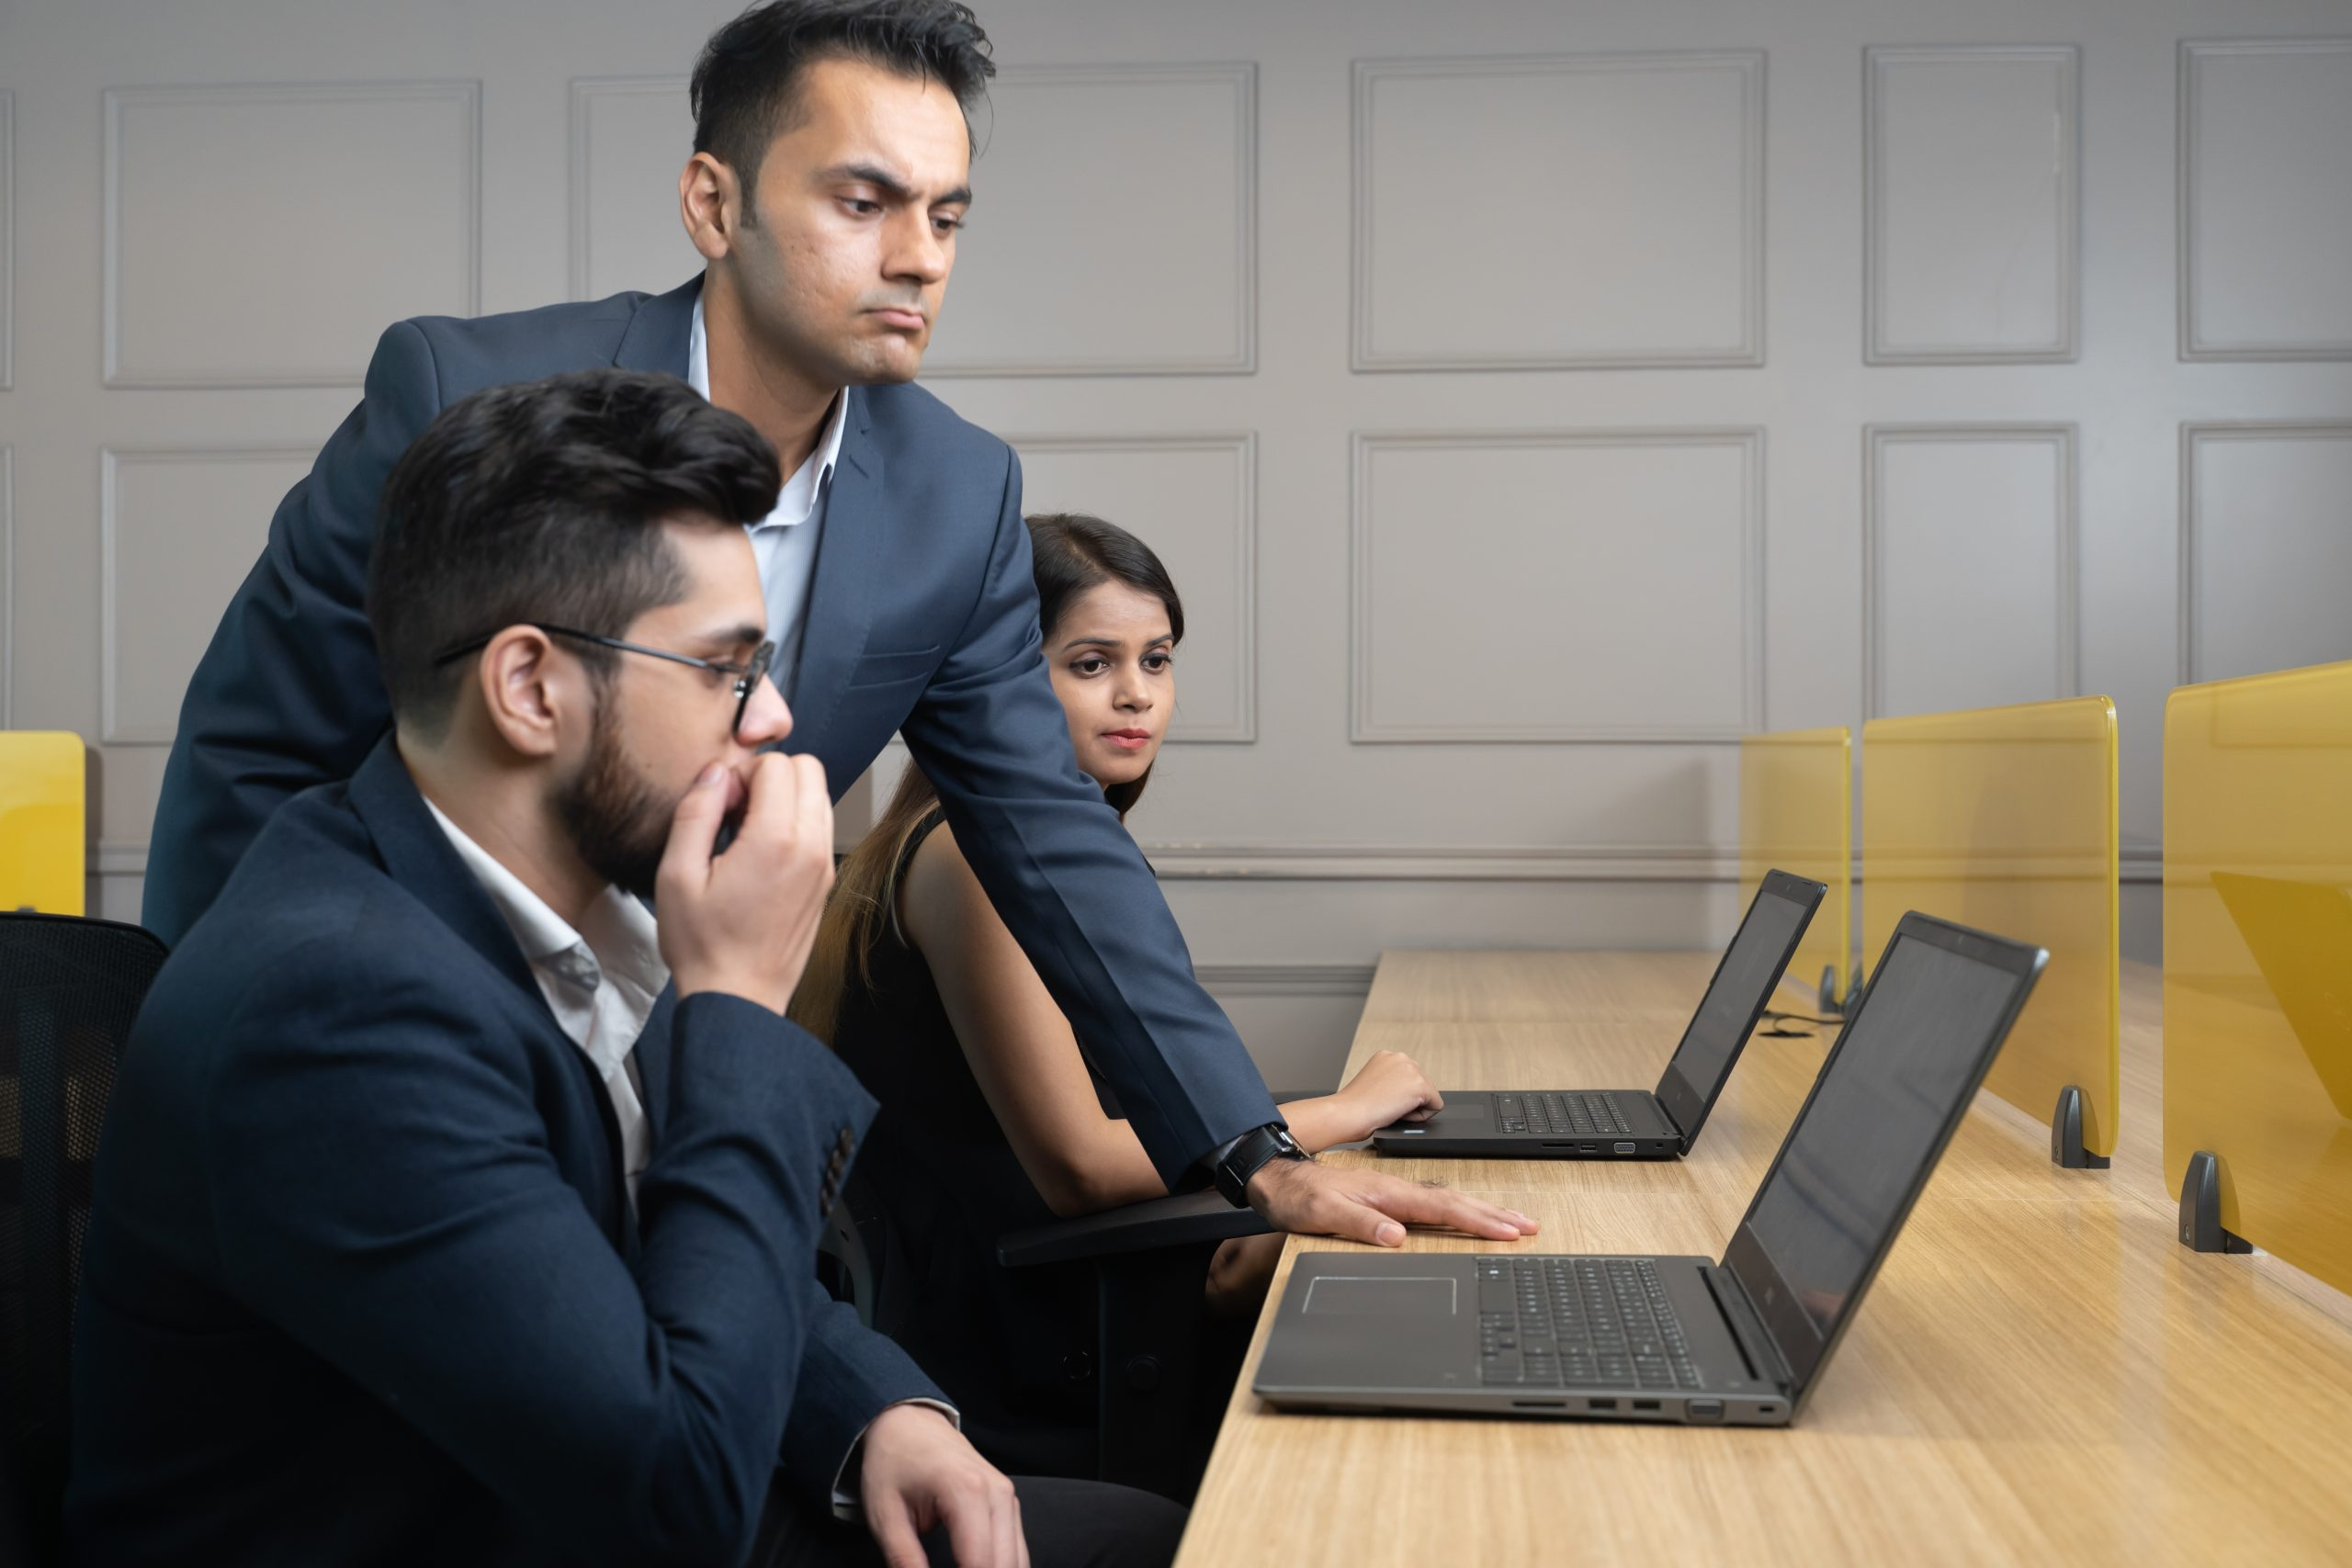 Boss unhappy with work